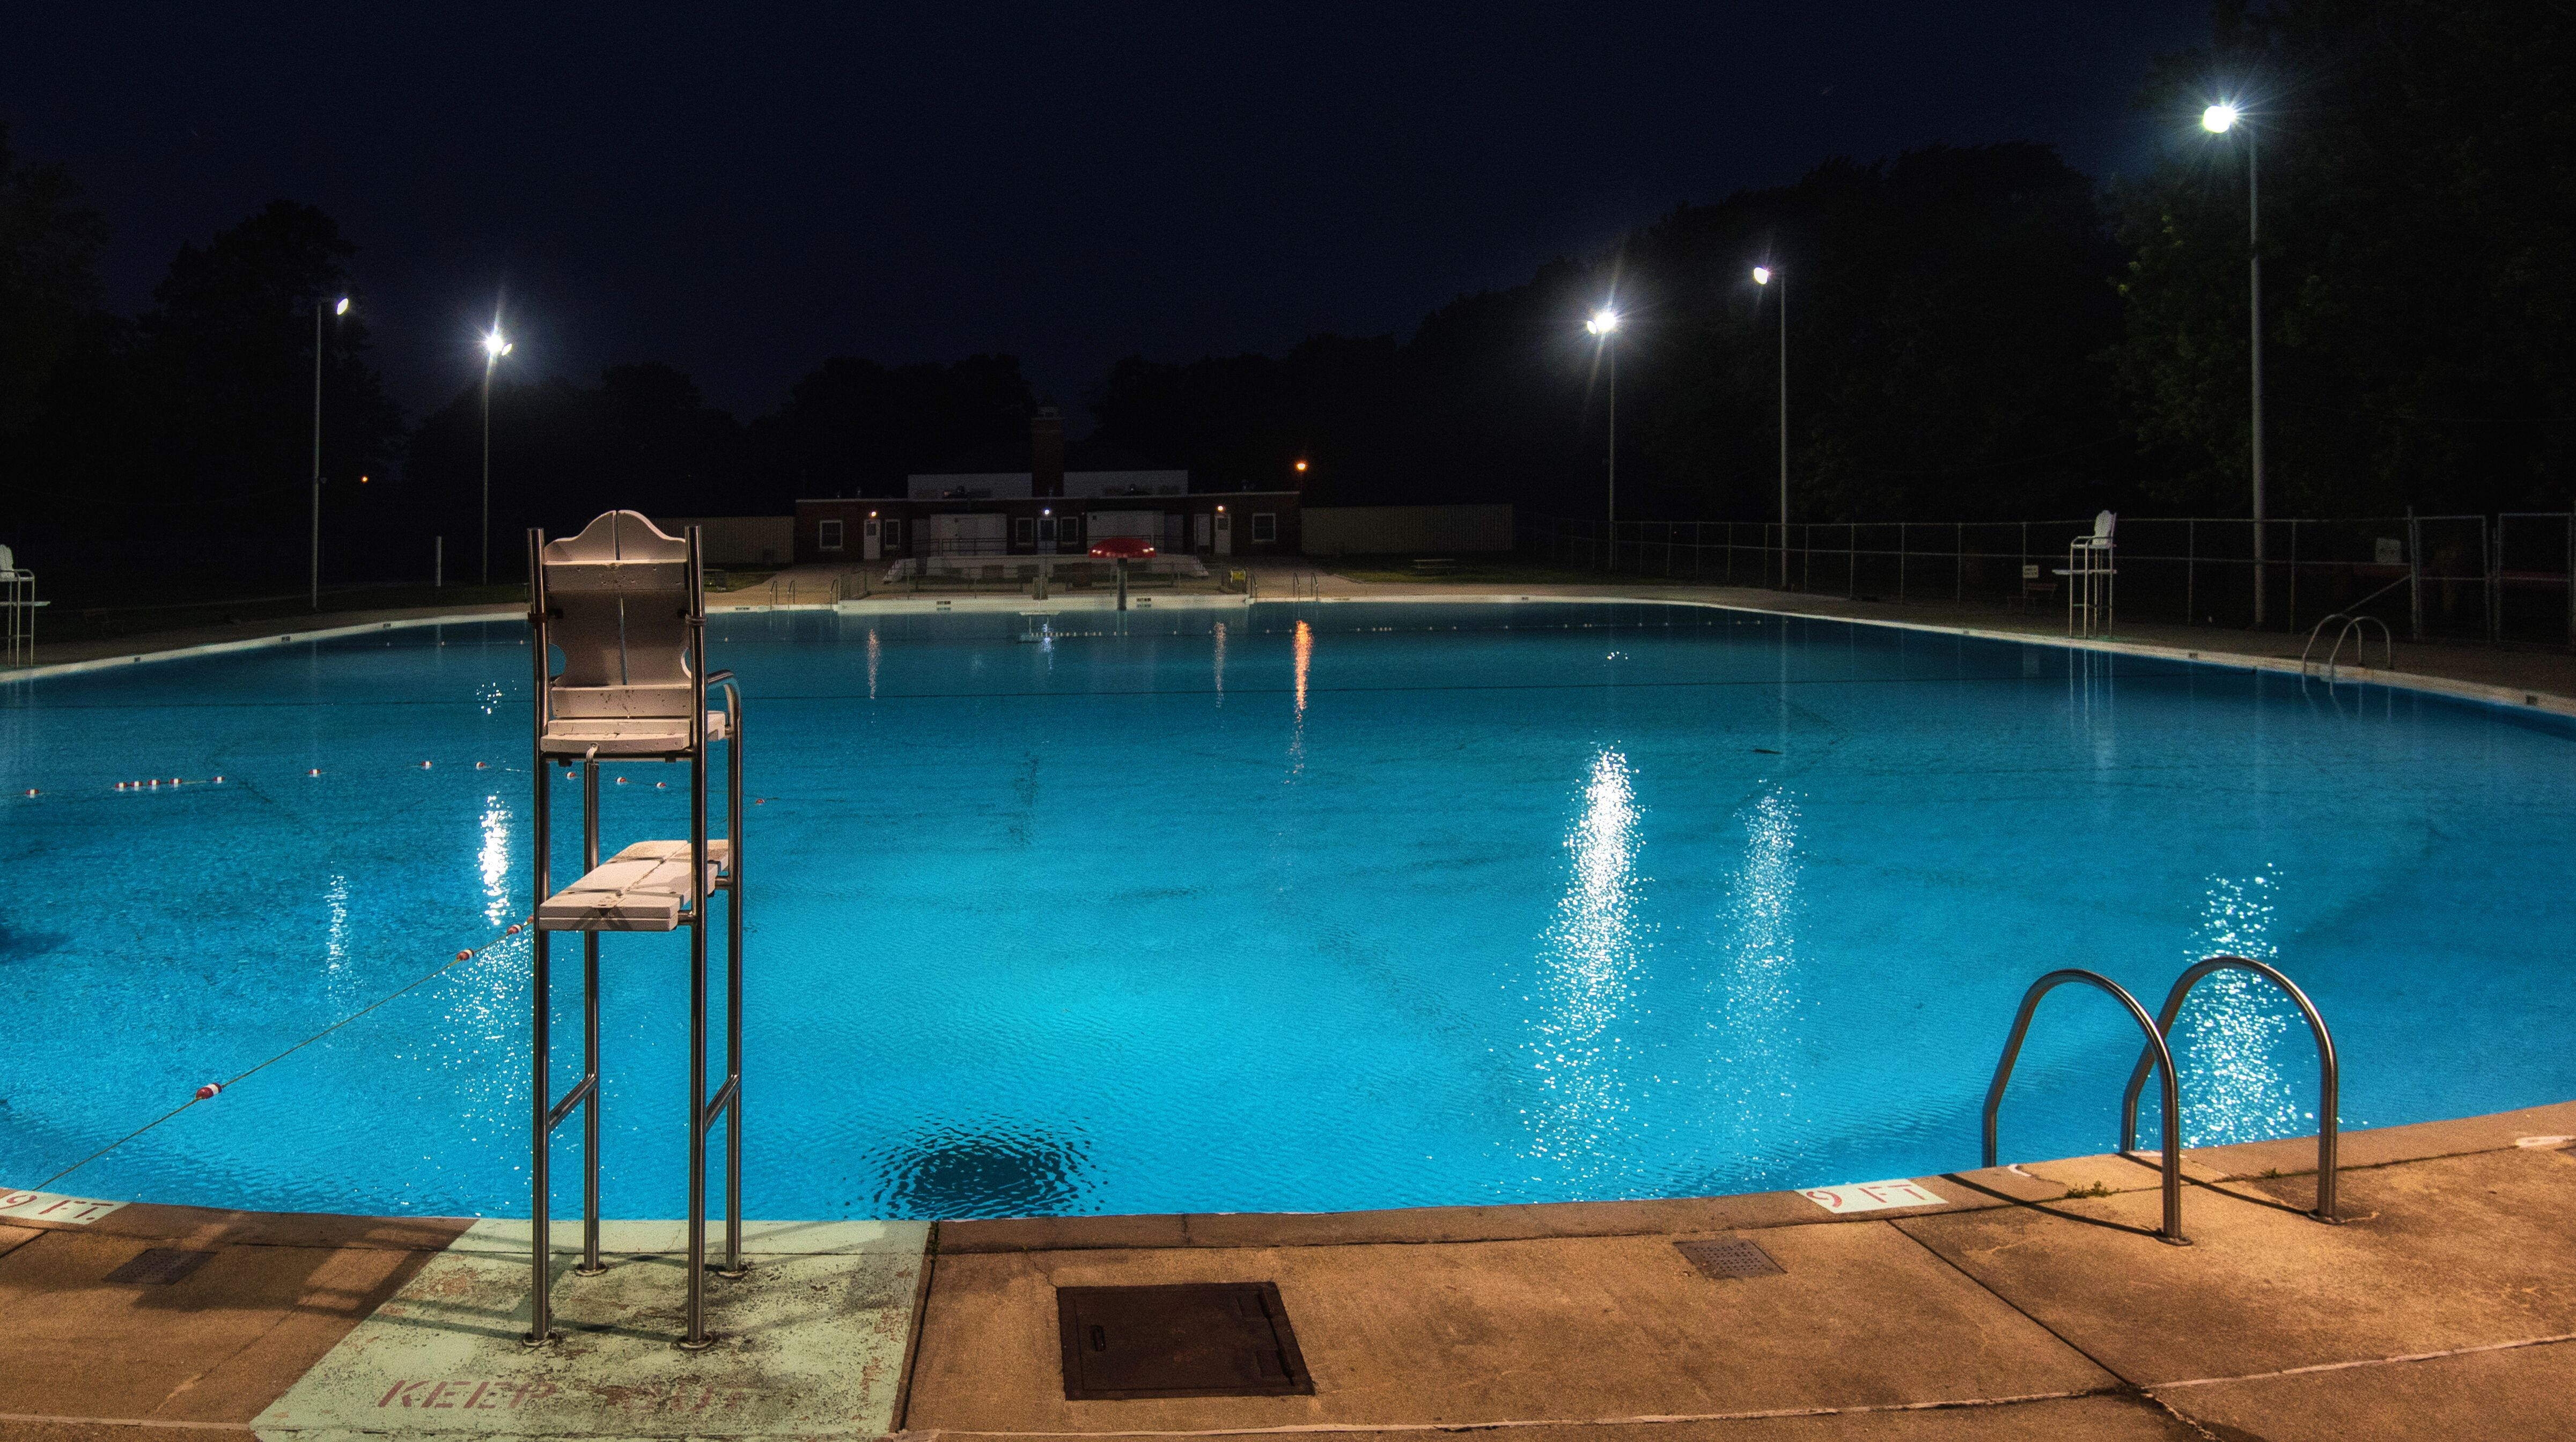 Timothy Holte - Pool at Night